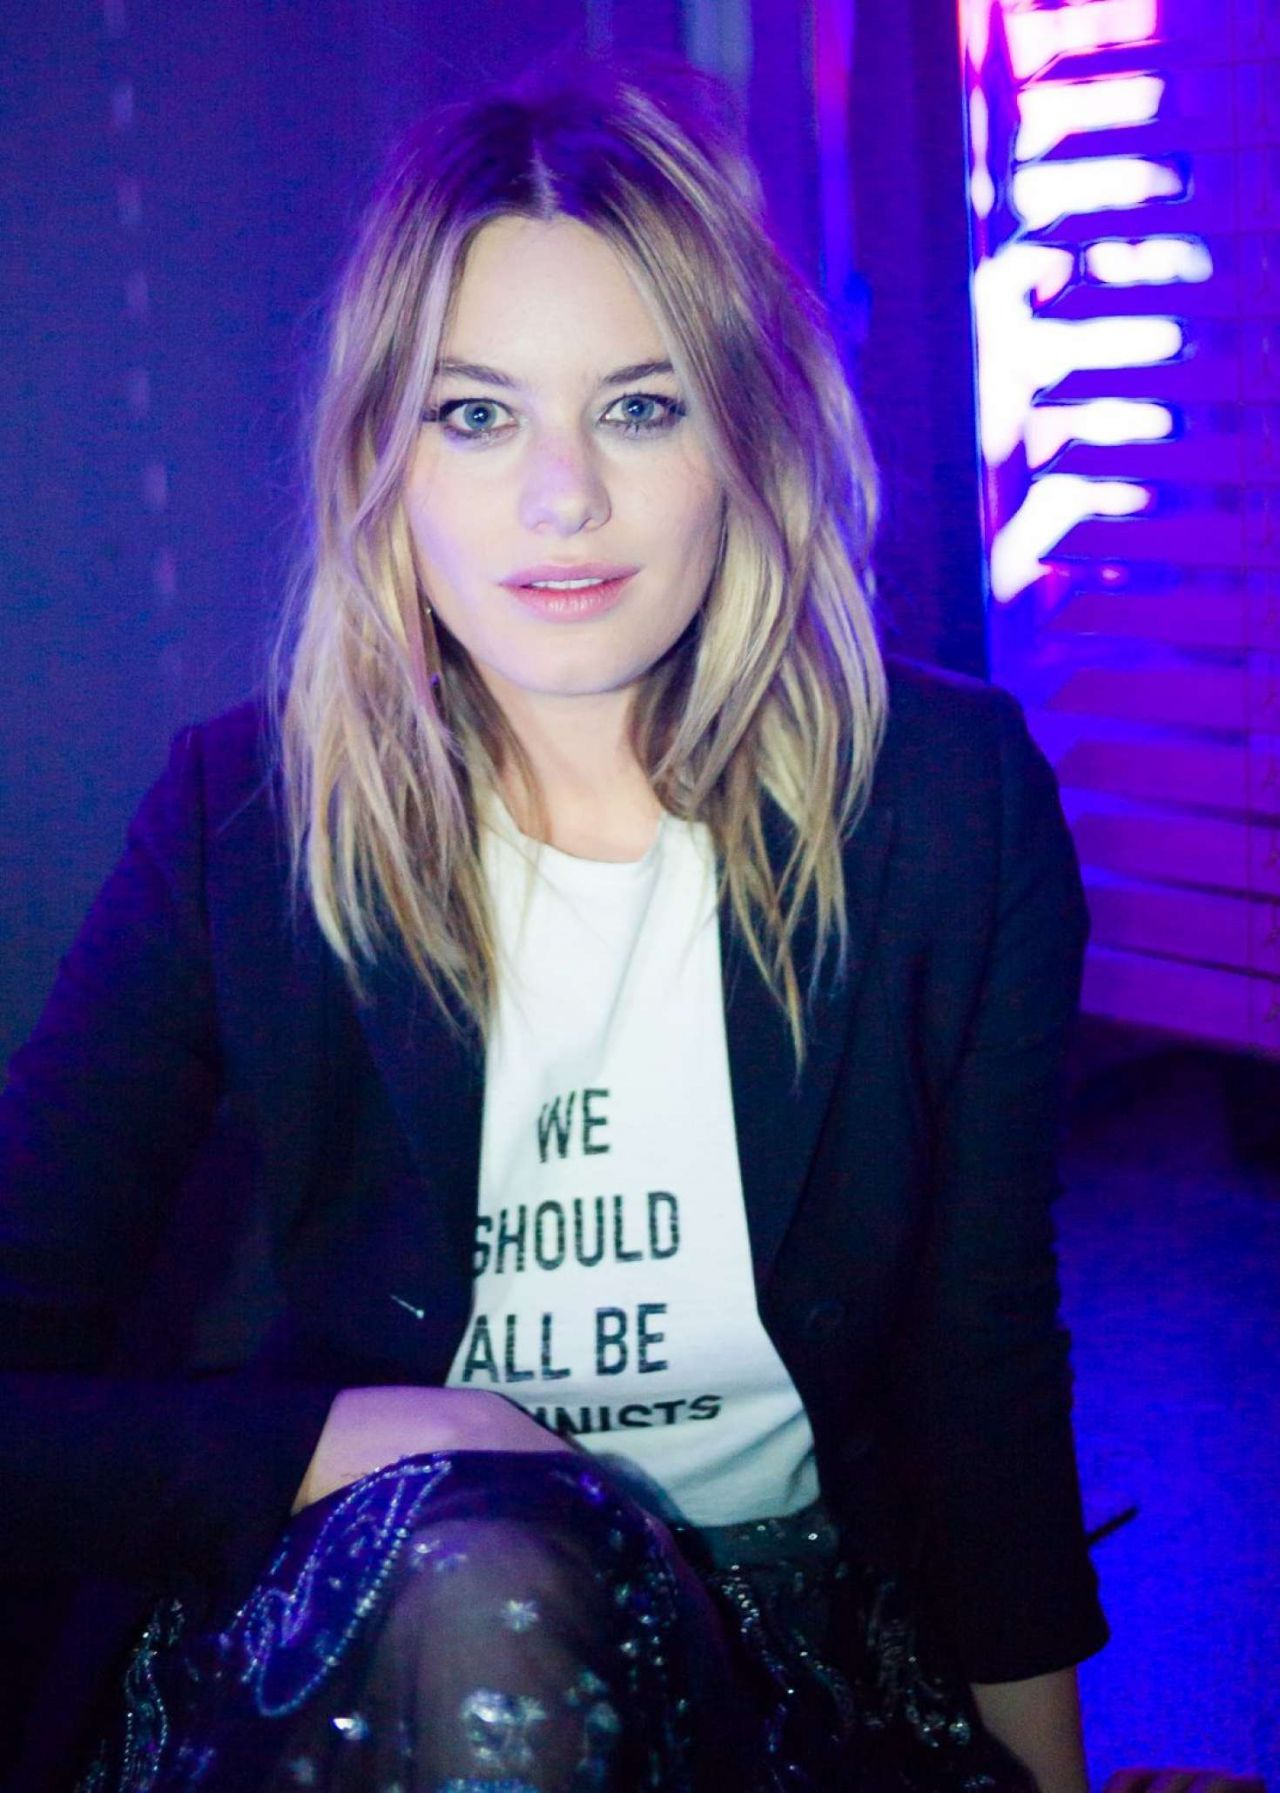 Camille Rowe Dior Celebrates Poison Girl In Nyc 1 31 2017